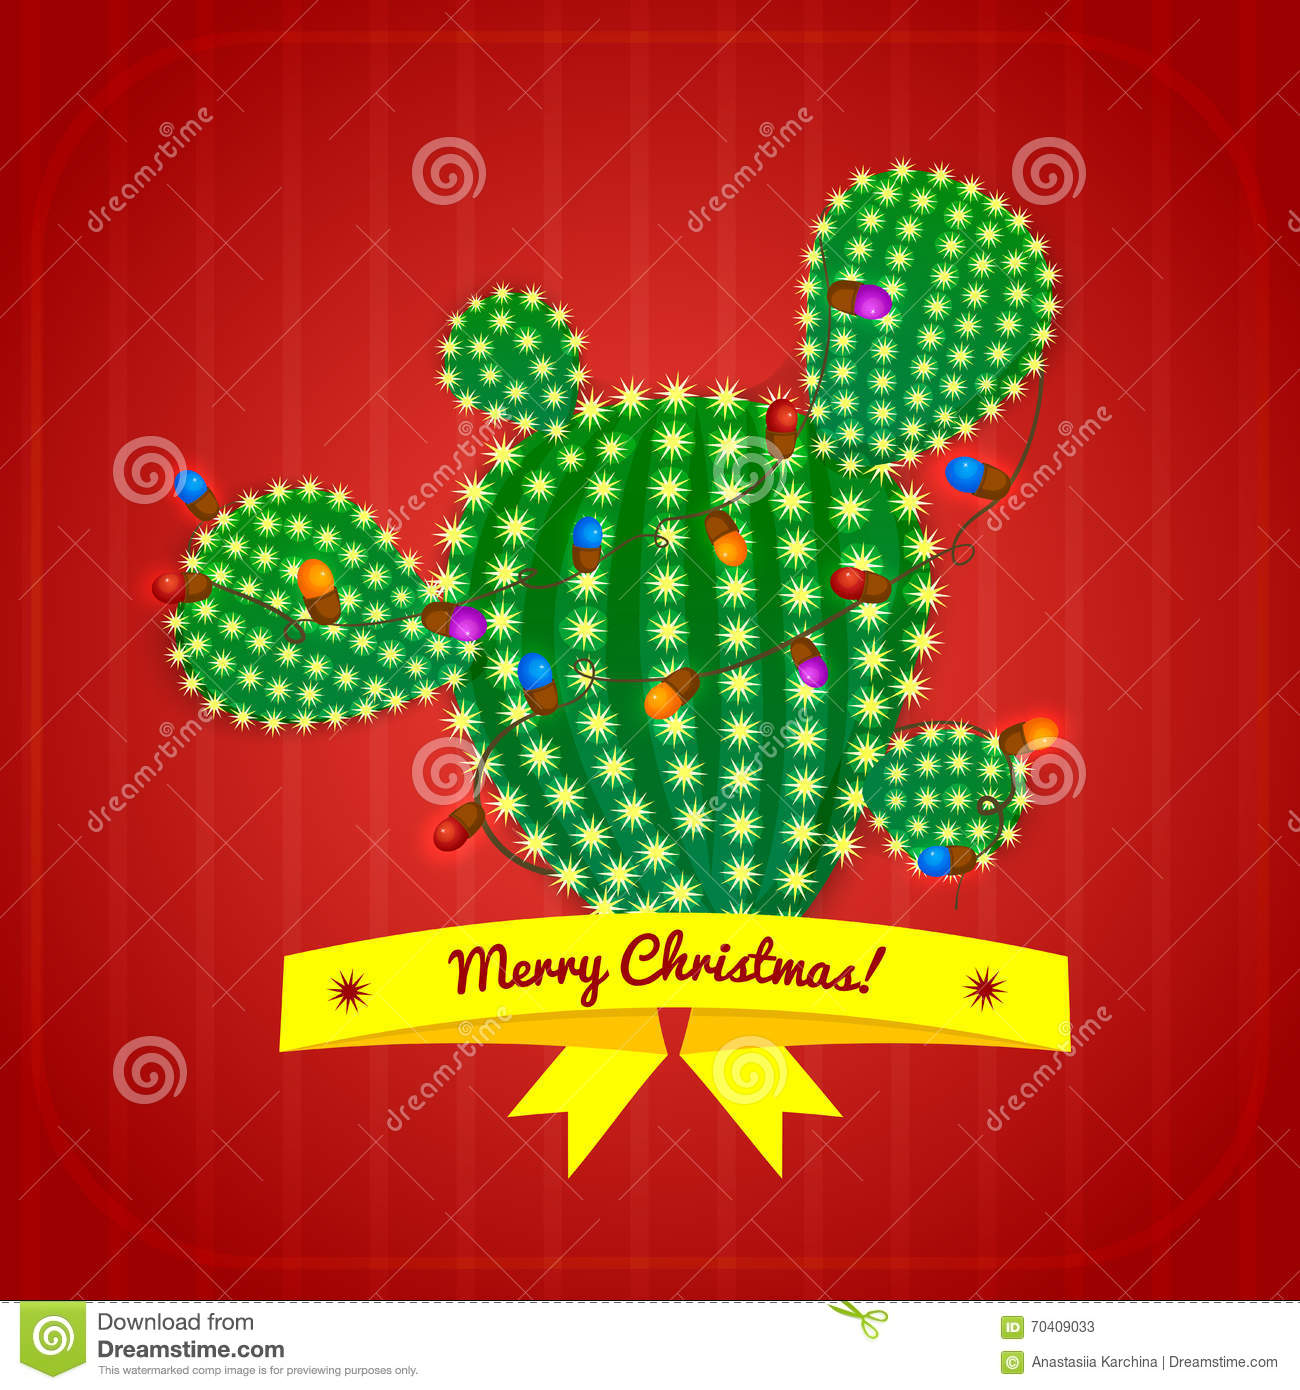 Cactus Decorated For Christmas: Christmas Cactus Tree, Vector Illustration Stock Vector